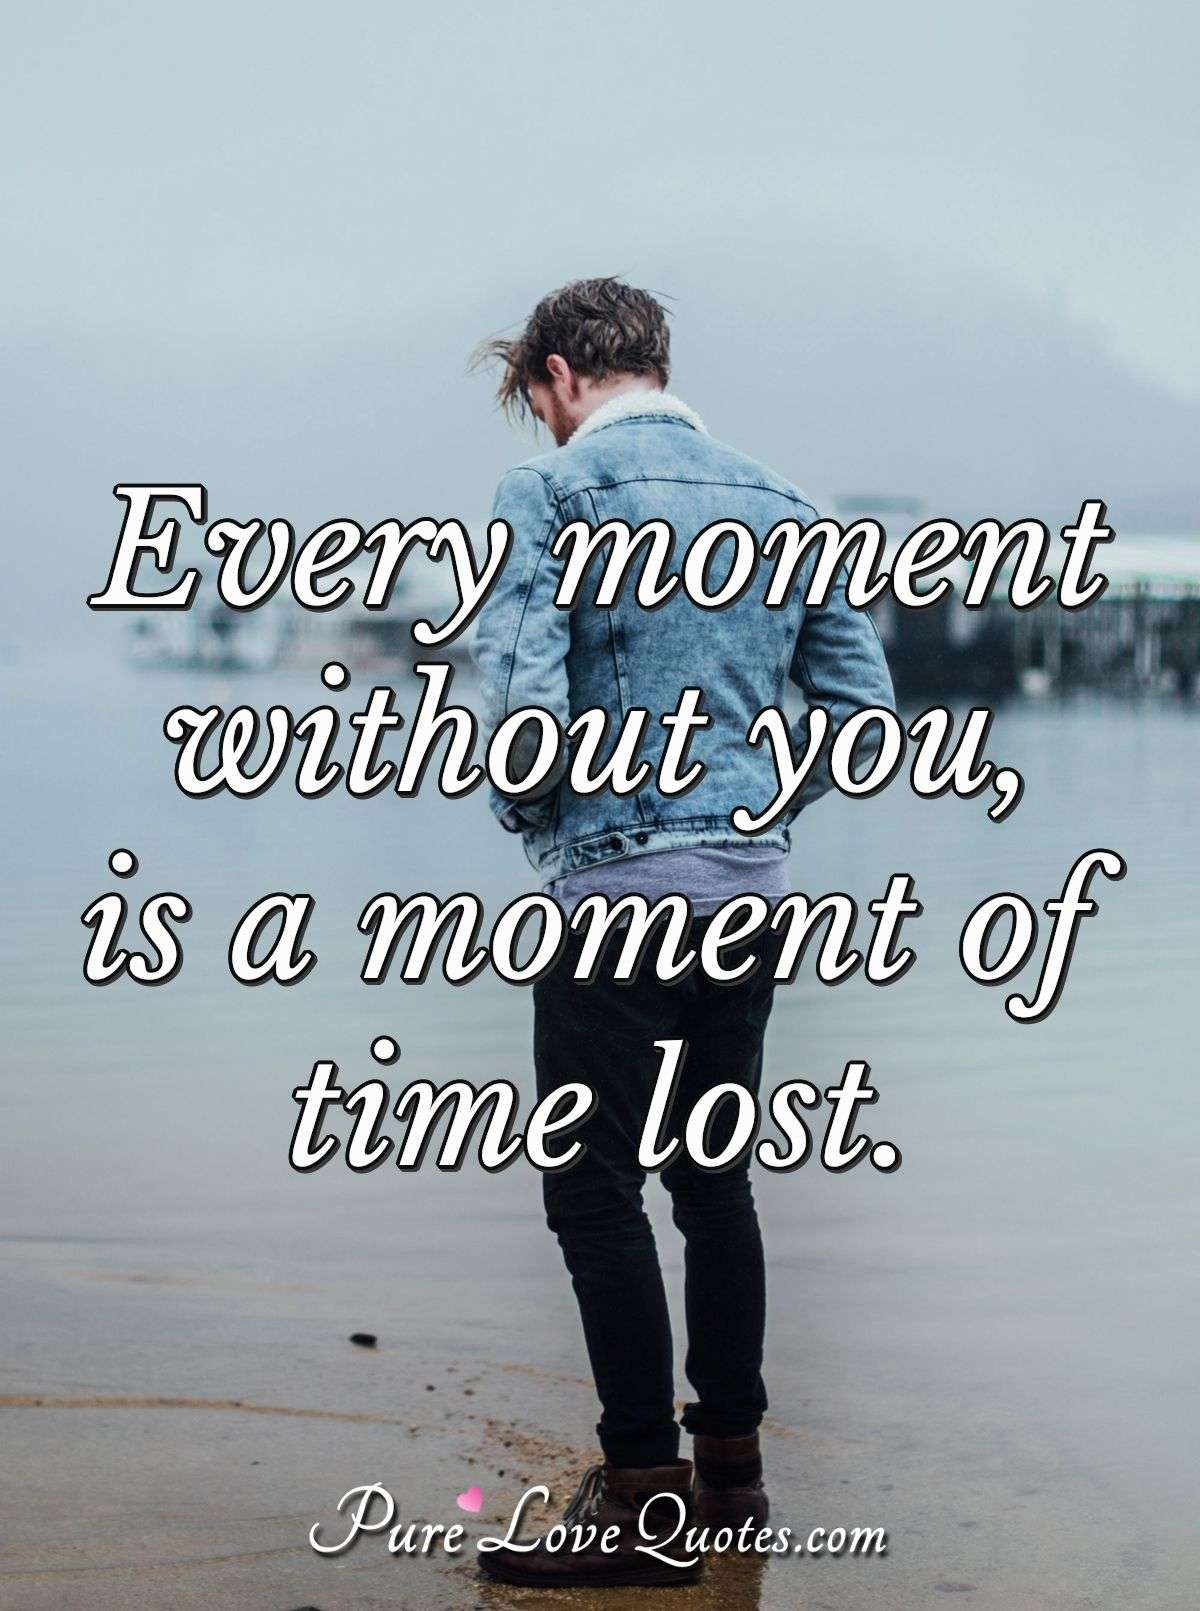 Every moment without you, is a moment of time lost. - Anonymous